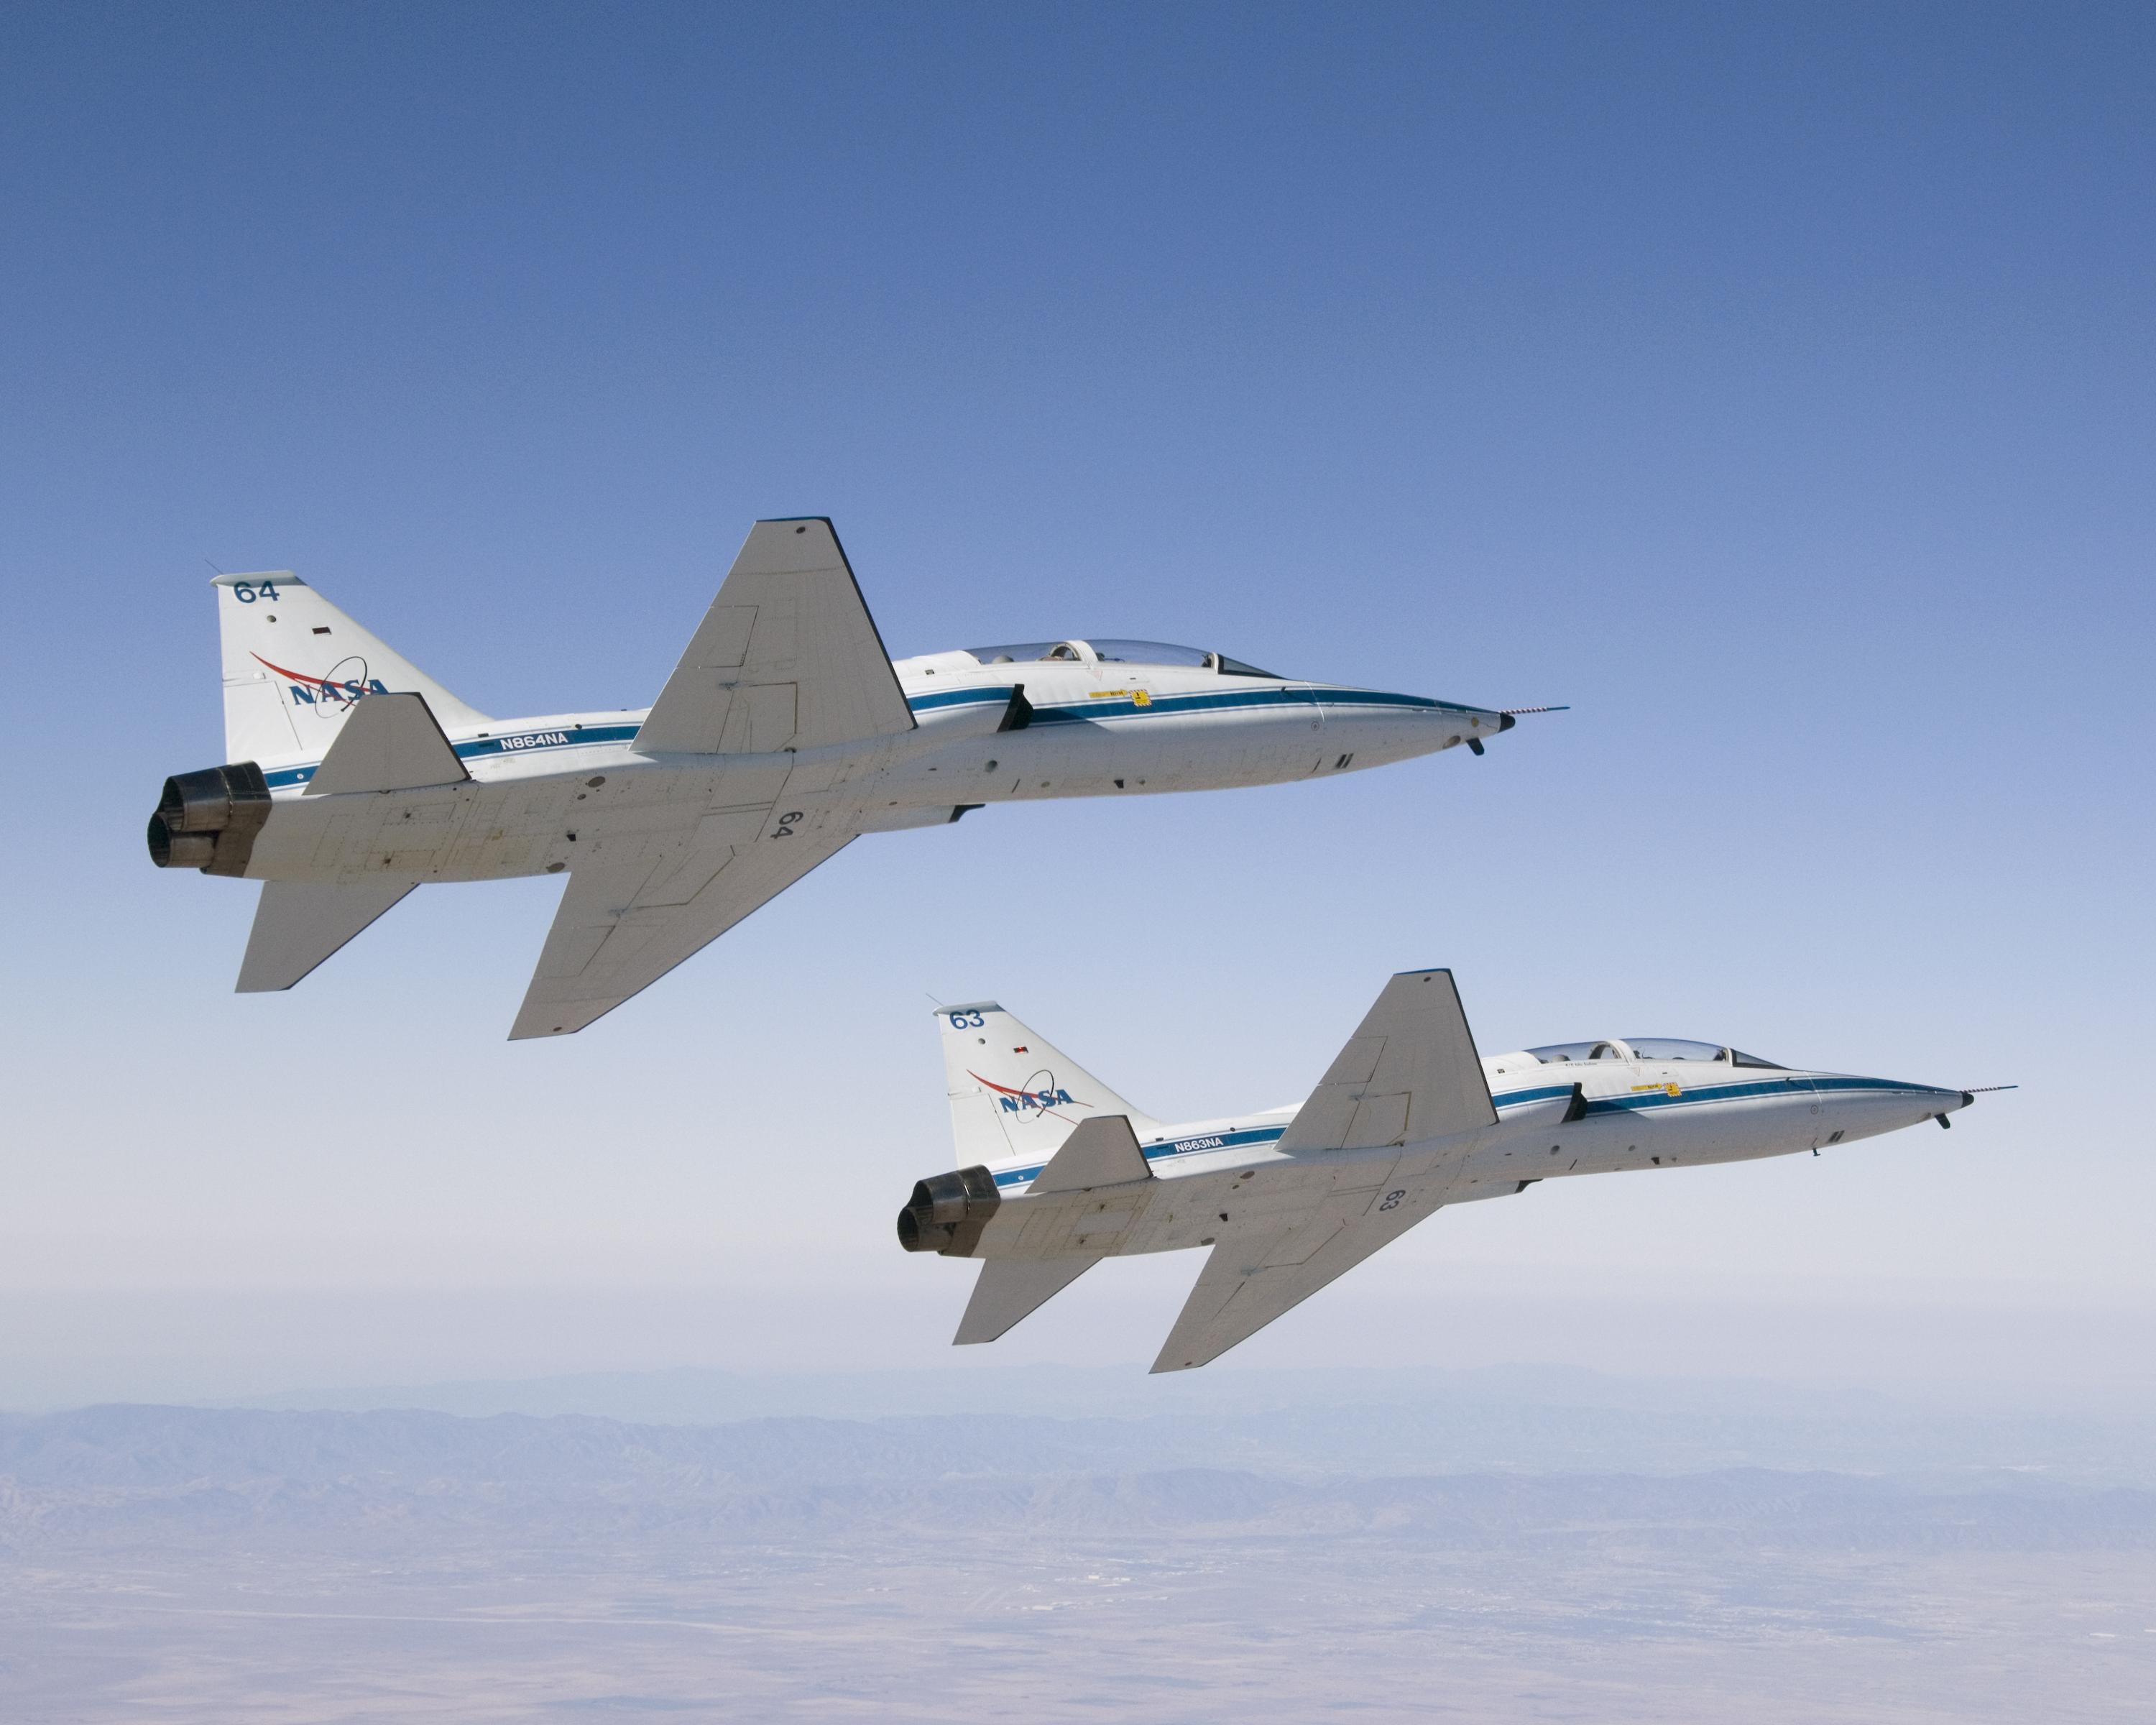 nasa fighter aircraft - photo #23